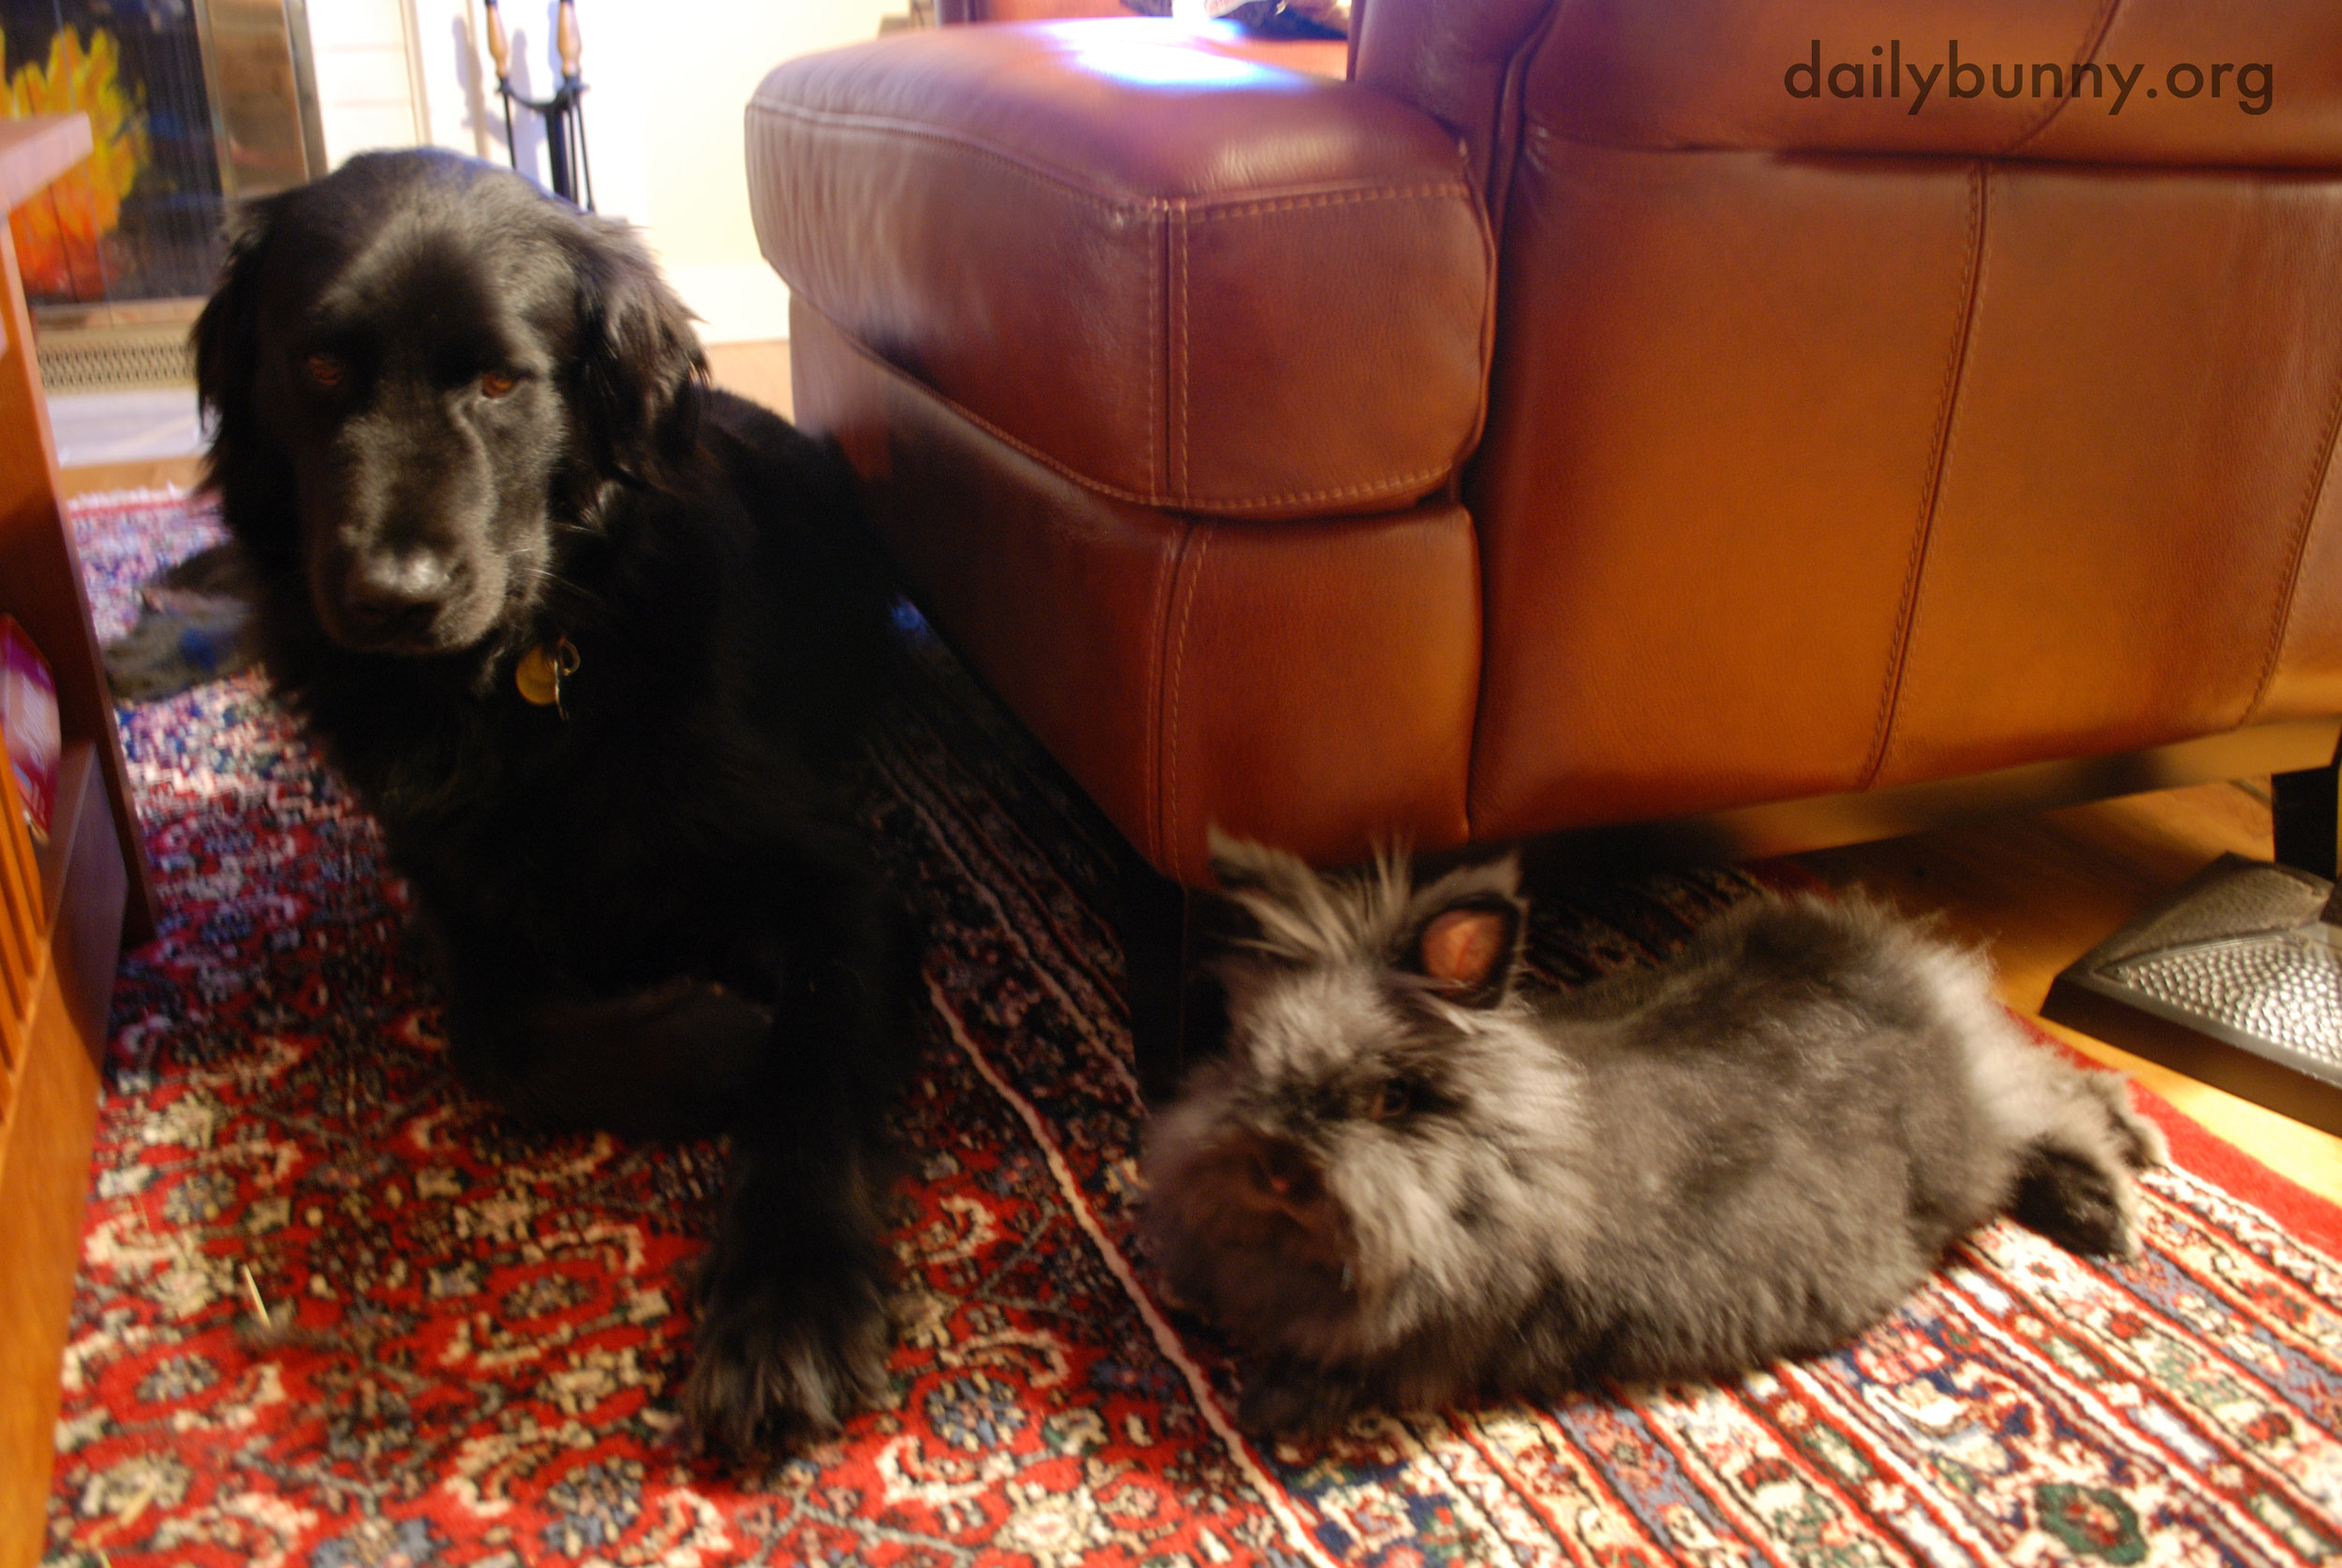 Bunny and His Dog Friend Retire to the Living Room to Relax and Socialize